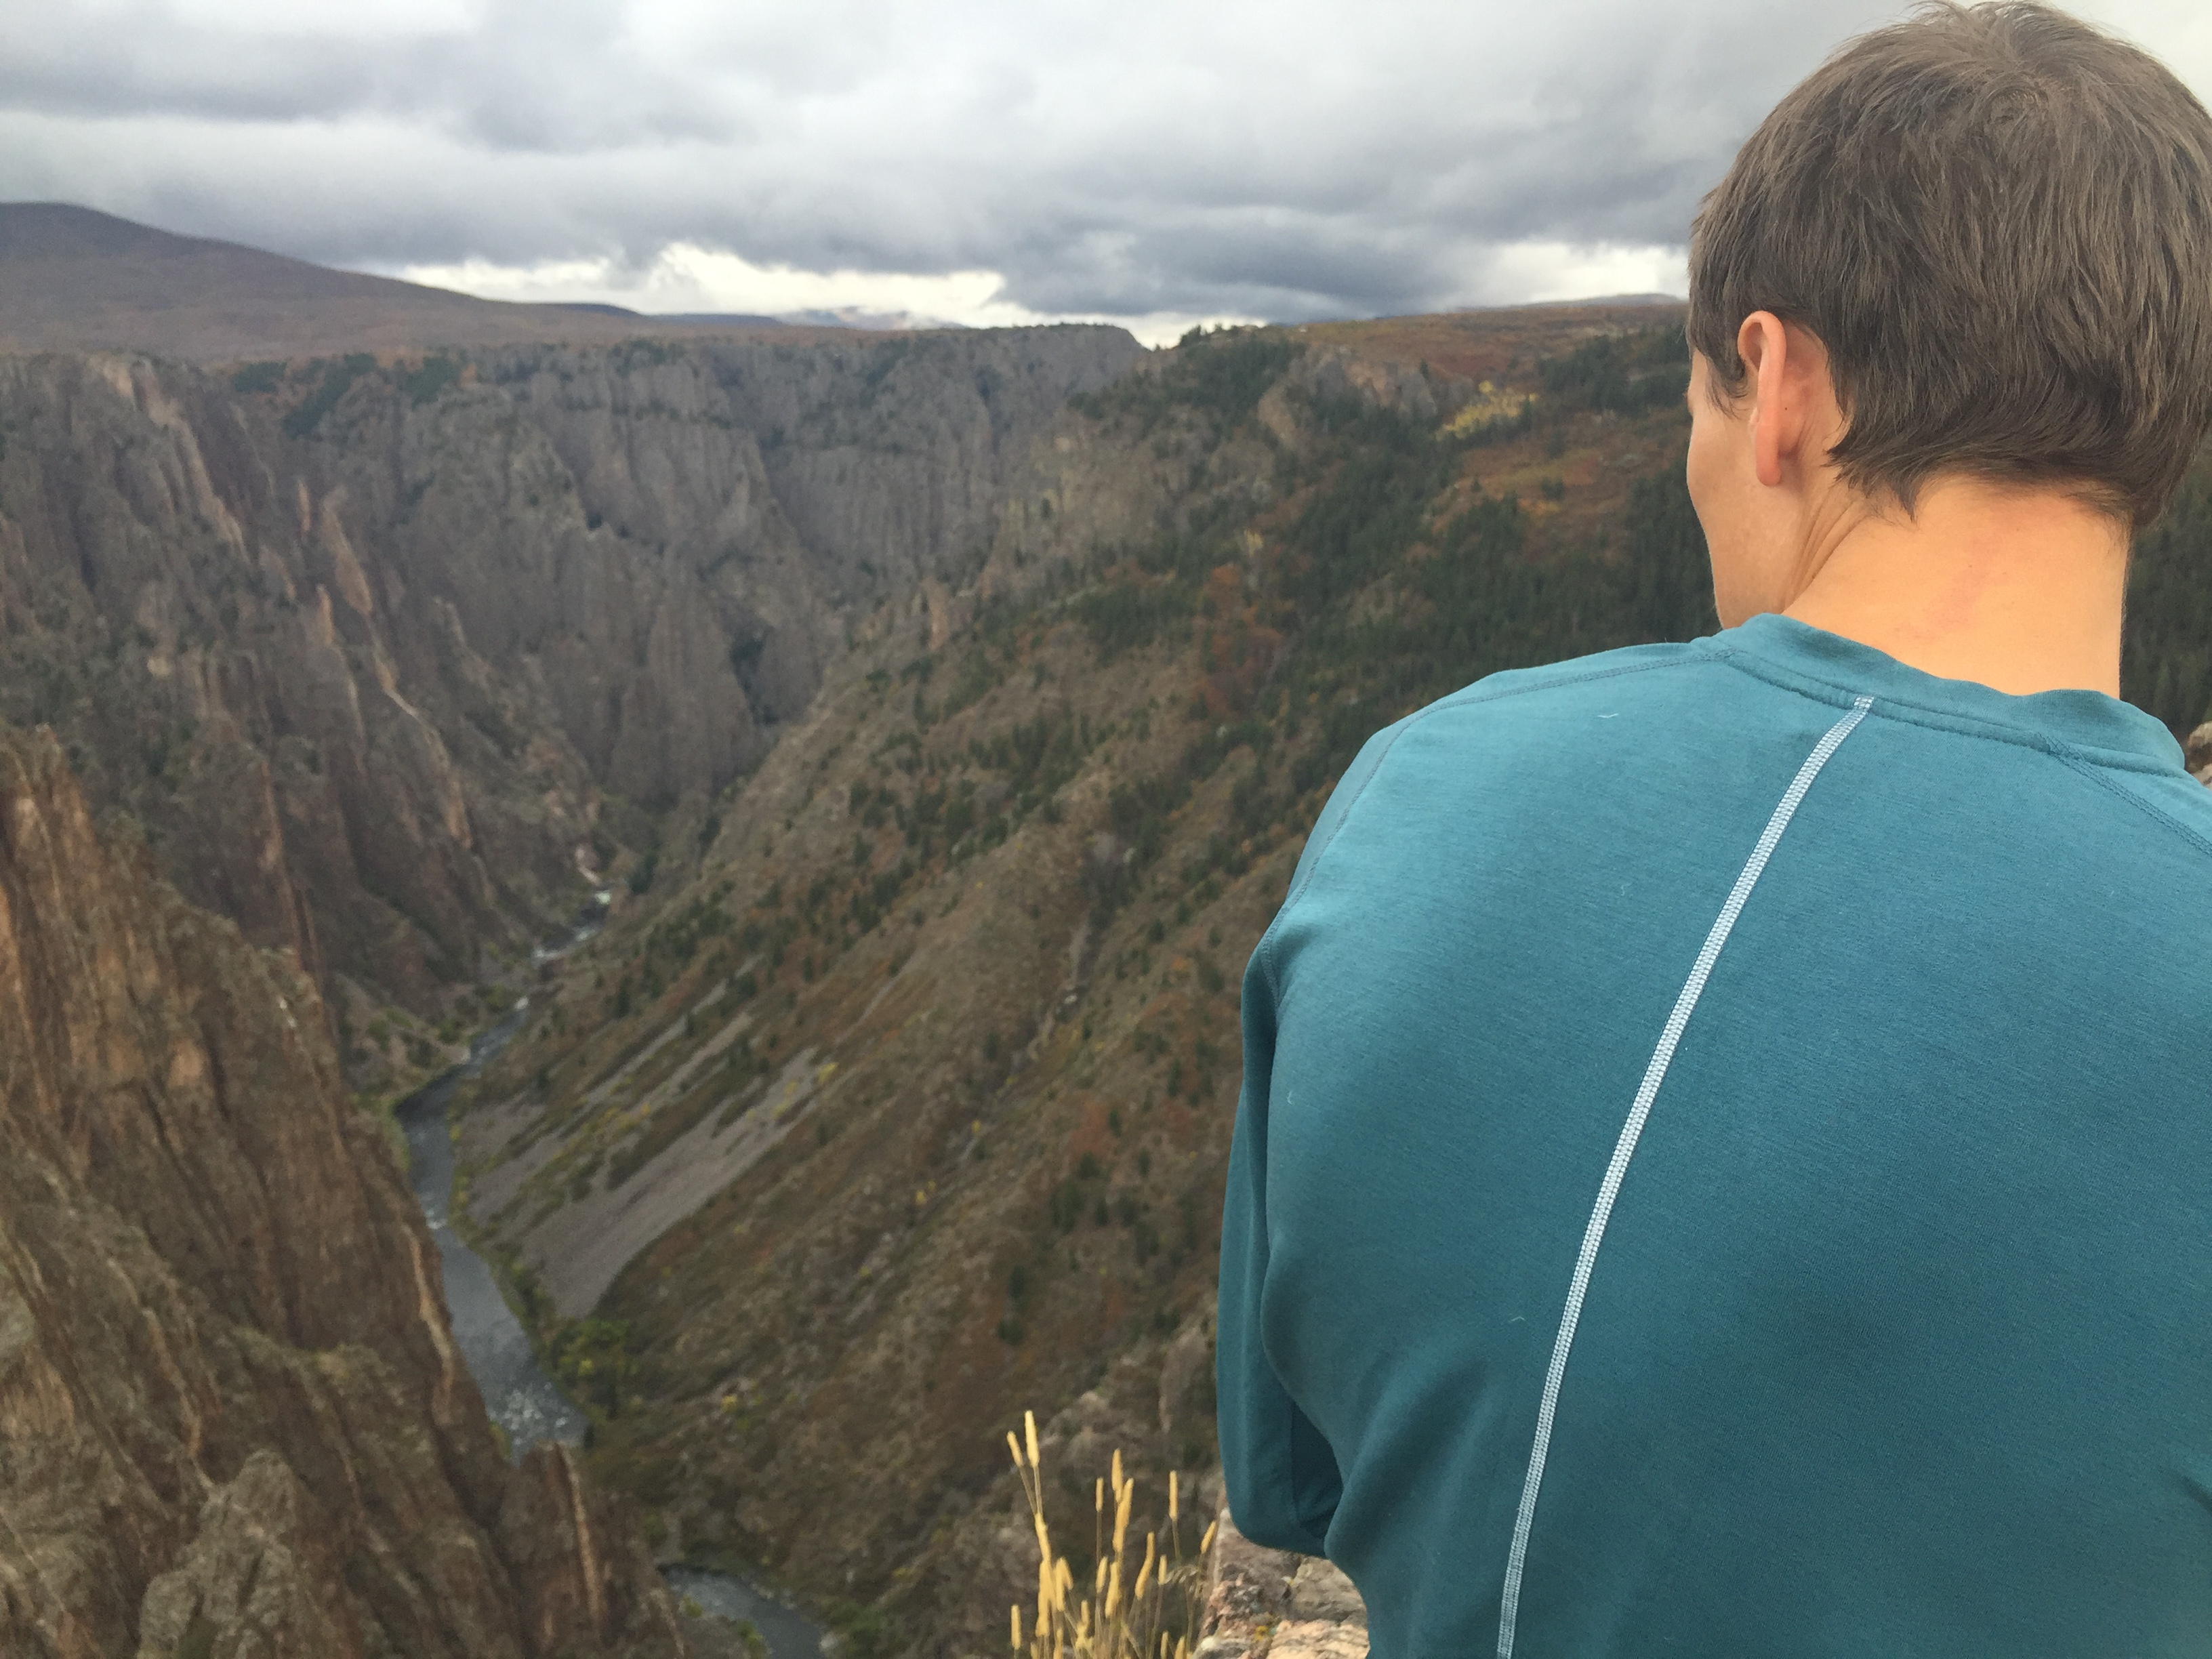 Podcast Episode #44: Trying Times in the National Parks, ft. Black Canyon of the Gunnison & Mammoth Cave